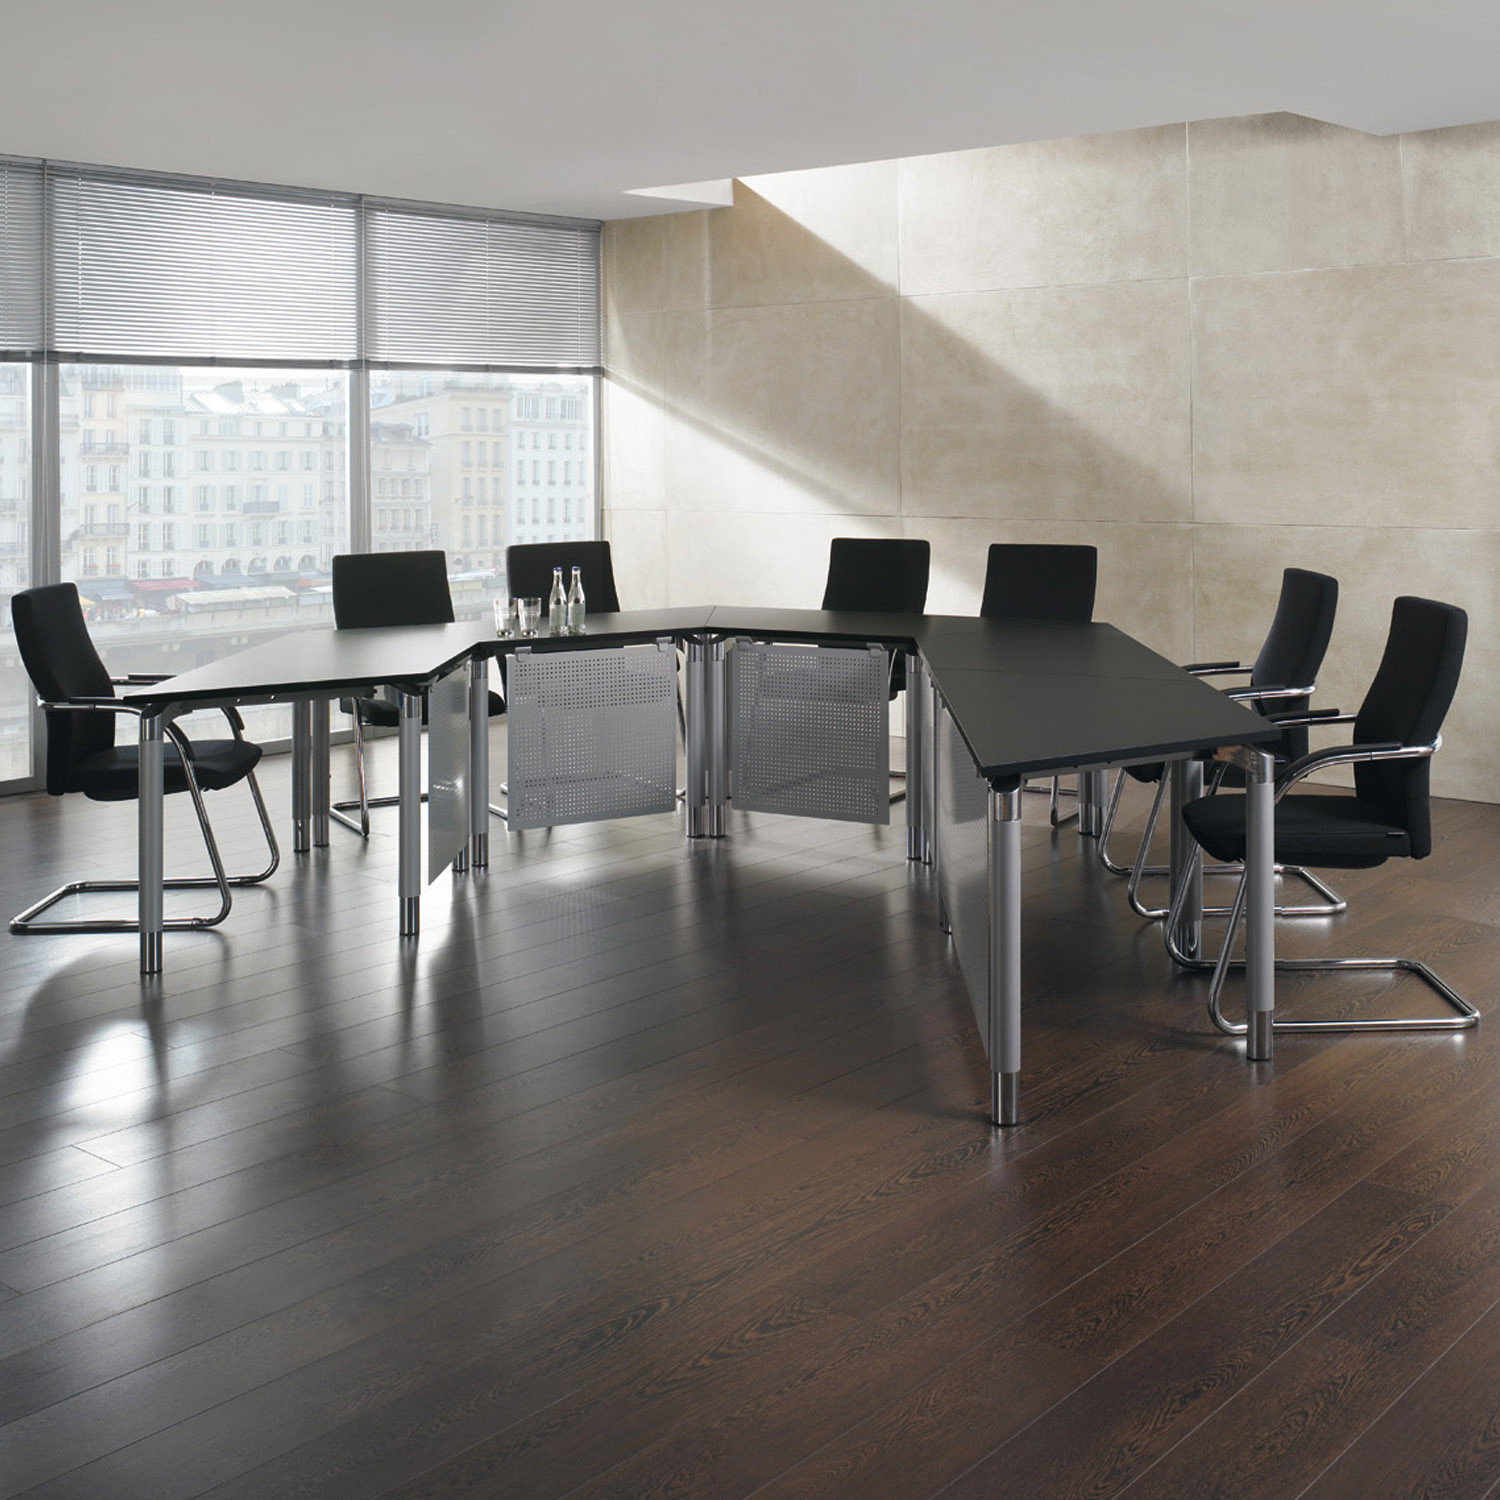 Antaro Meeting Tables by Assmann